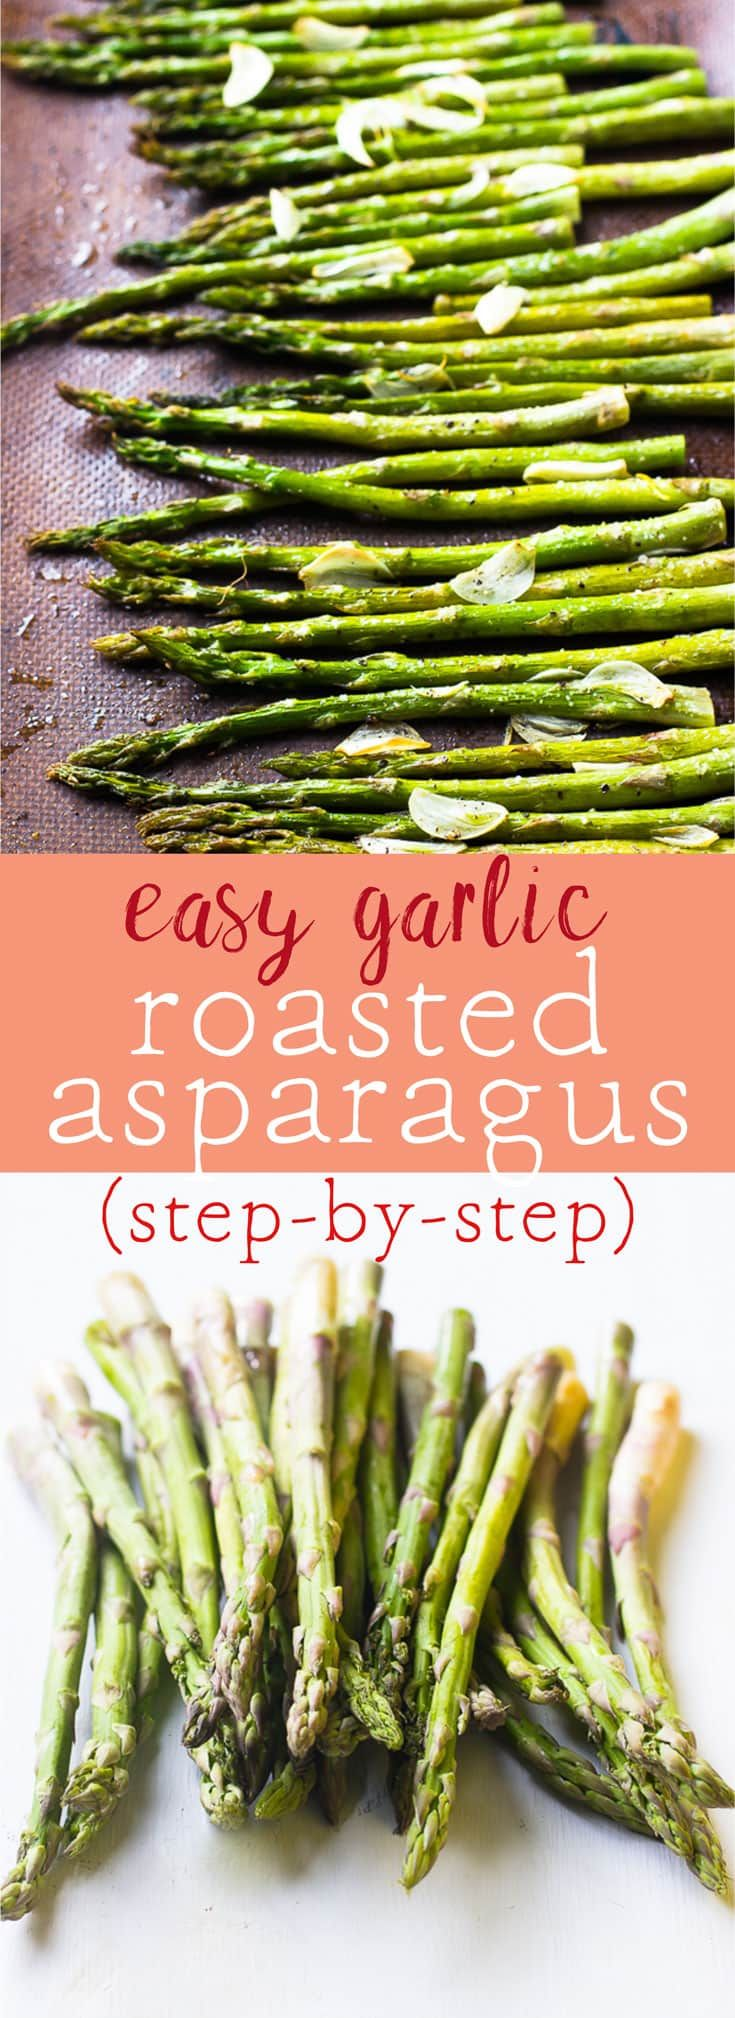 Garlic Roasted Asparagus is a must-make staple dish in my house. They are crunchy and flavourful. Here's a step-by-step how to guide for roasting asparagus. via http://jessicainthekitchen.com